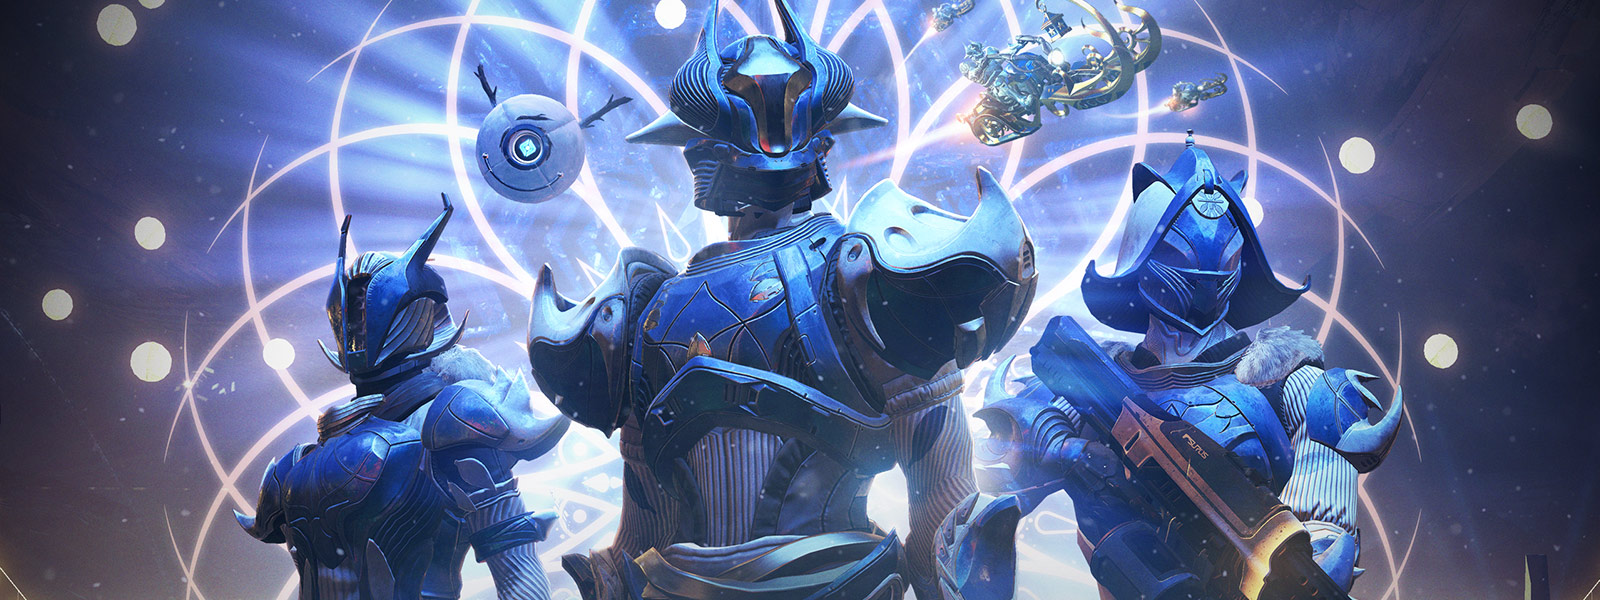 Front view of 3 guardians in blue winter themed armor